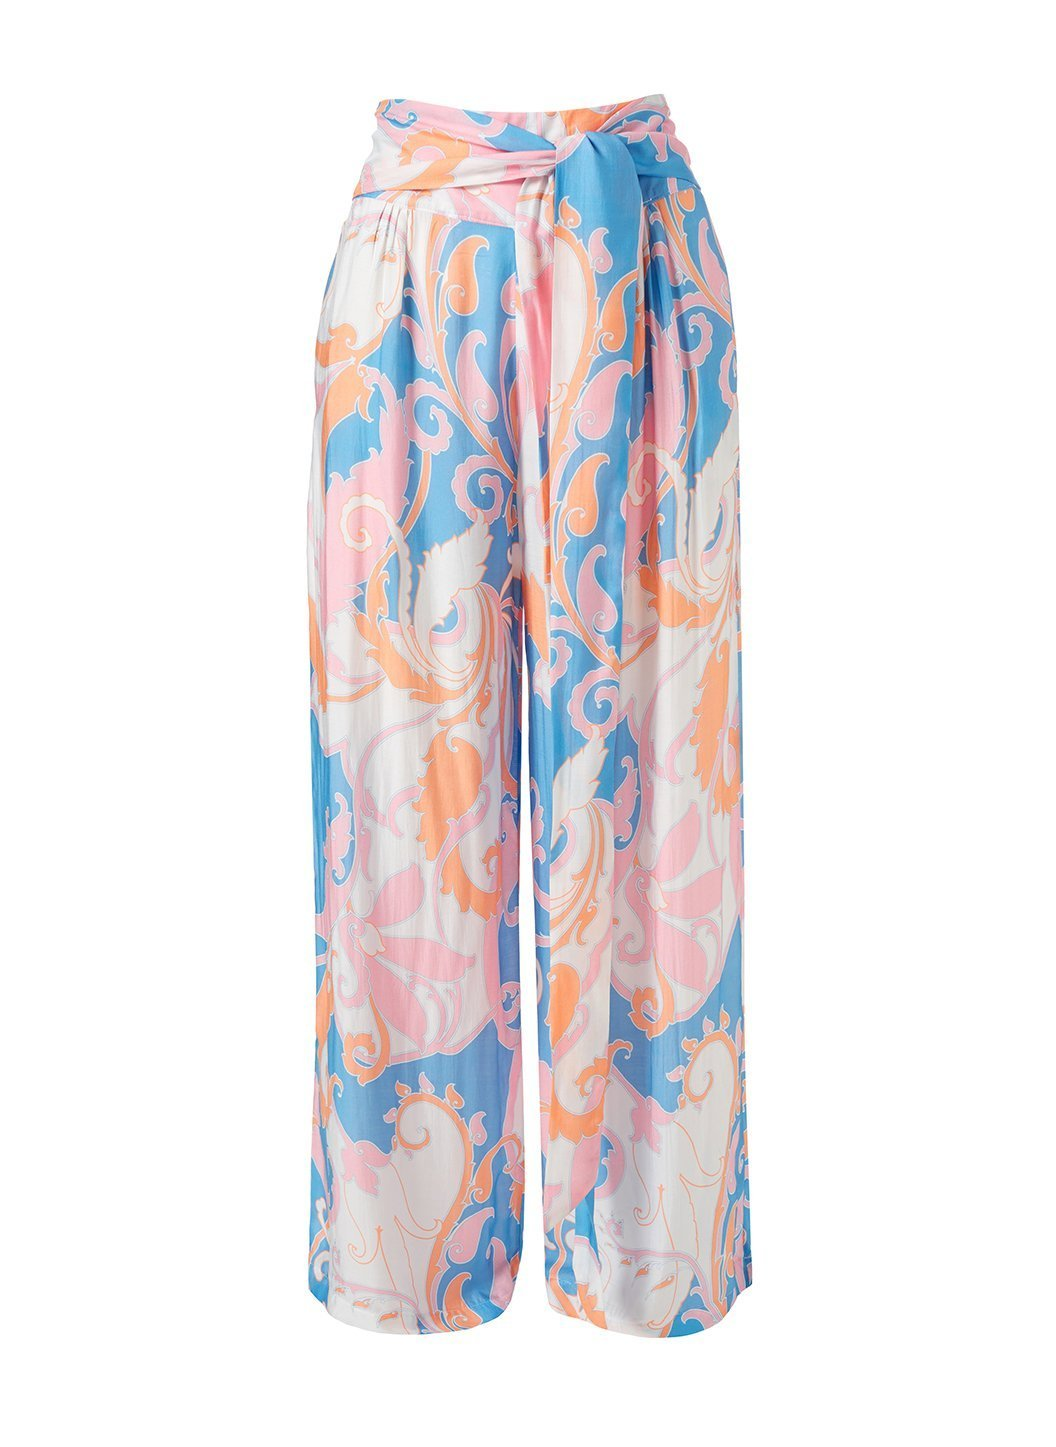 Natasha Baroque Blush Trousers Cutout